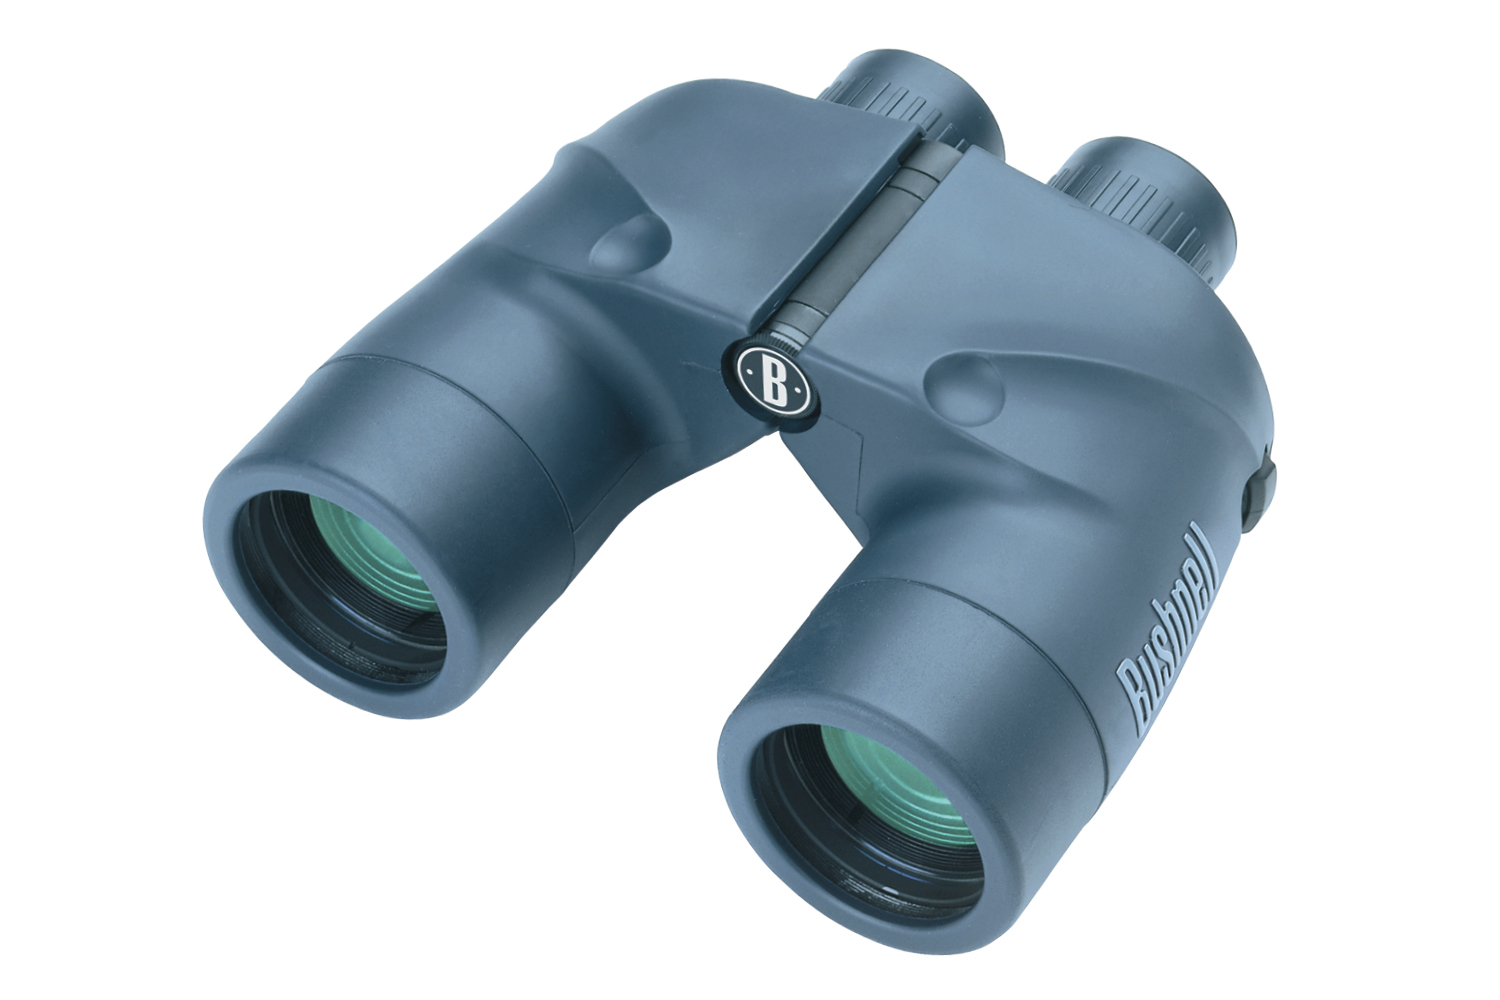 Бинокль Bushnell Marine 7x50 бинокль bushnell engage 12x50